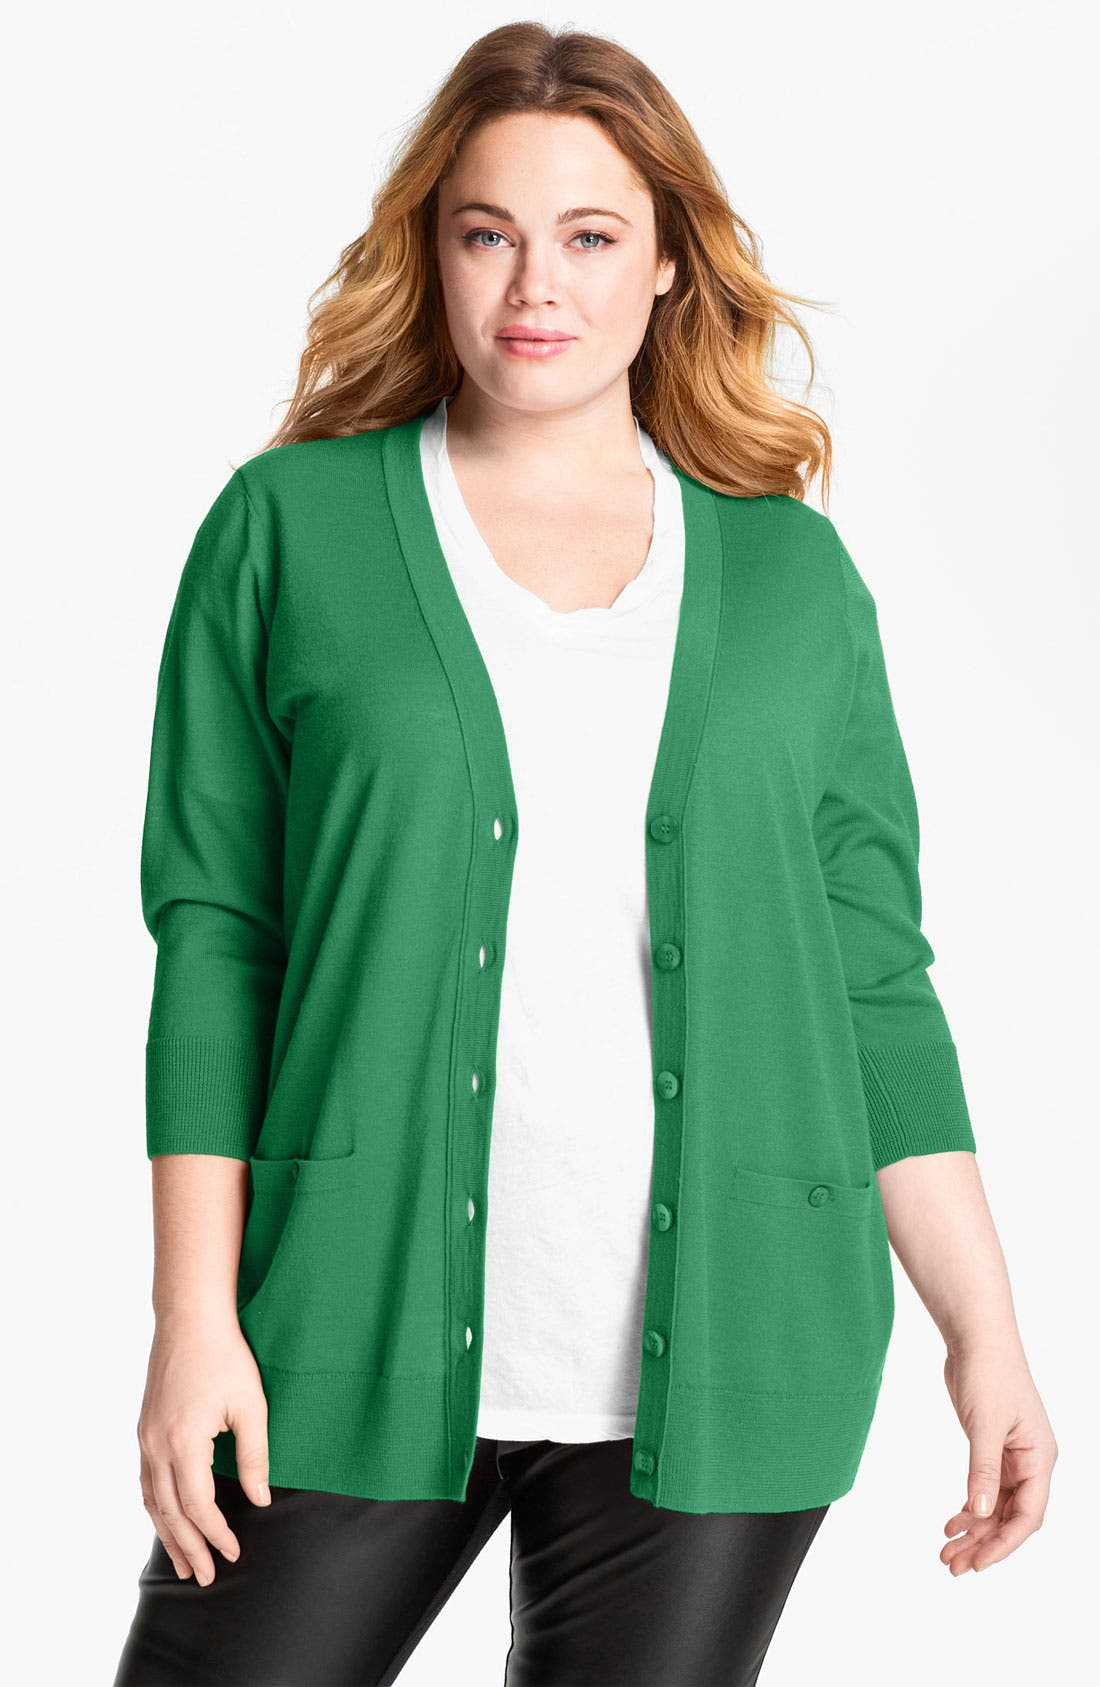 Main Image - Sejour 'Girlfriend' Three Quarter Sleeve Cardigan (Plus Size)